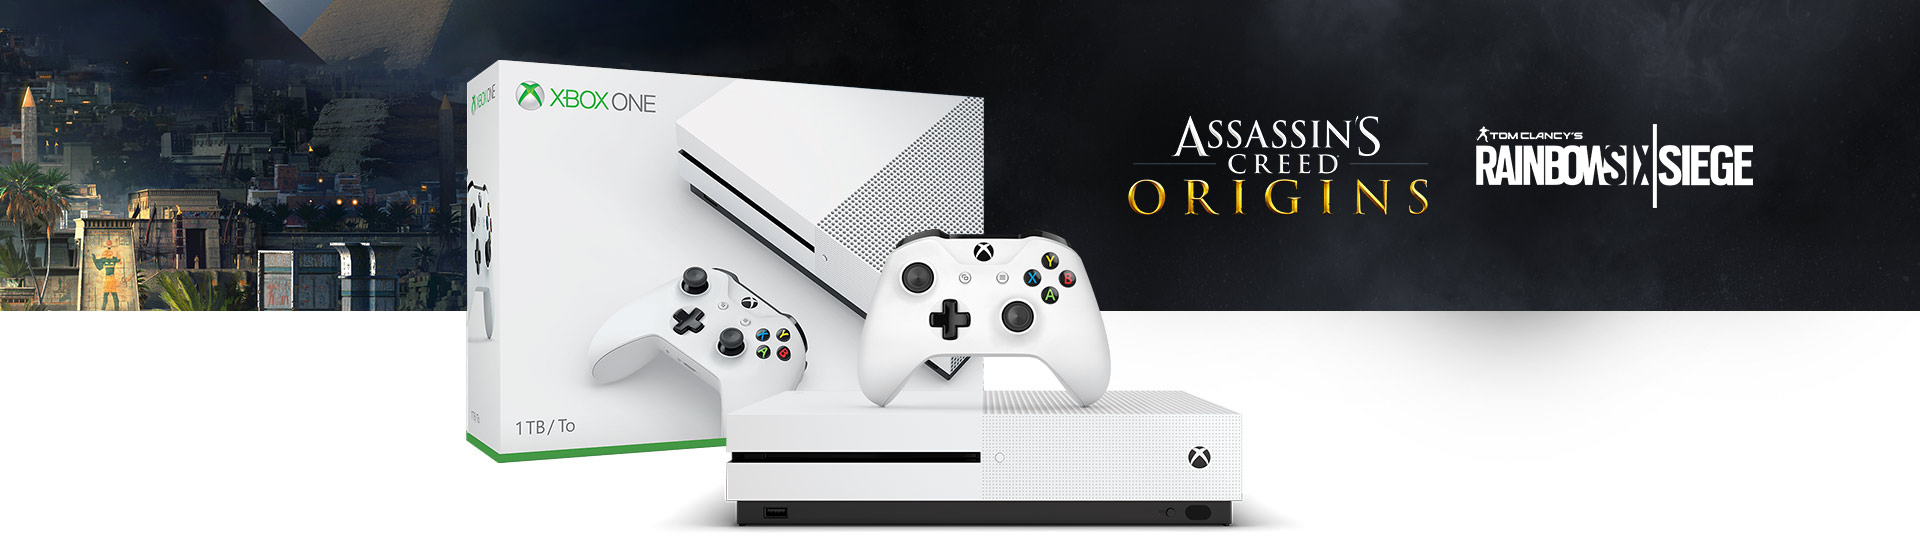 Xbox One S Assassin's Creed: Origins Bonus Bundle (1TB)